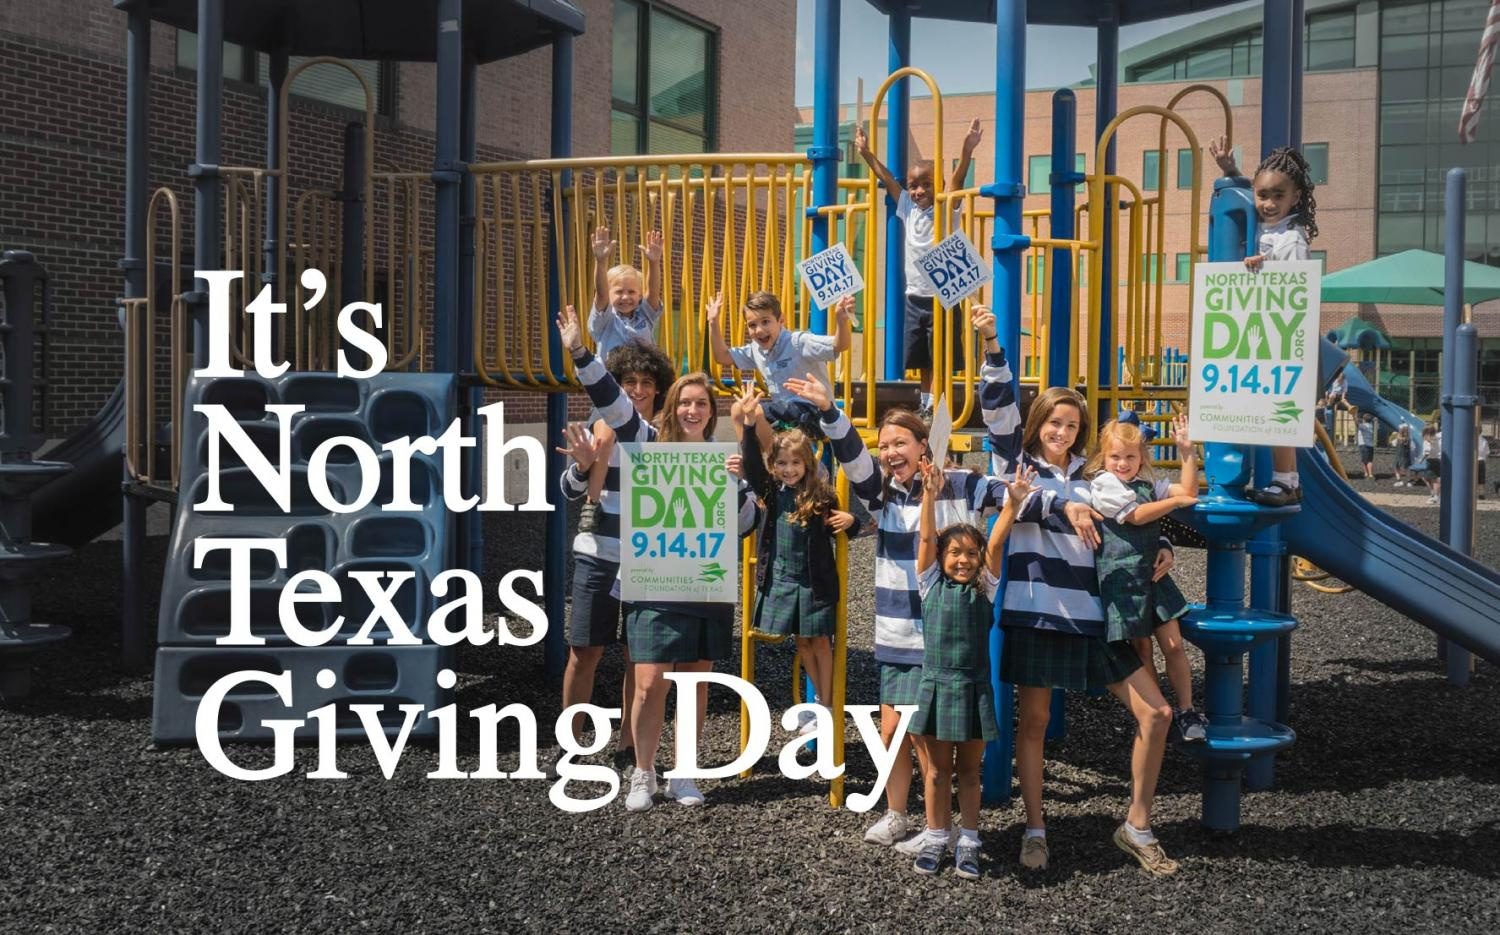 North Texas Giving Day benefits students of all ages. The School hopes to beat the $327,000 raised last year.